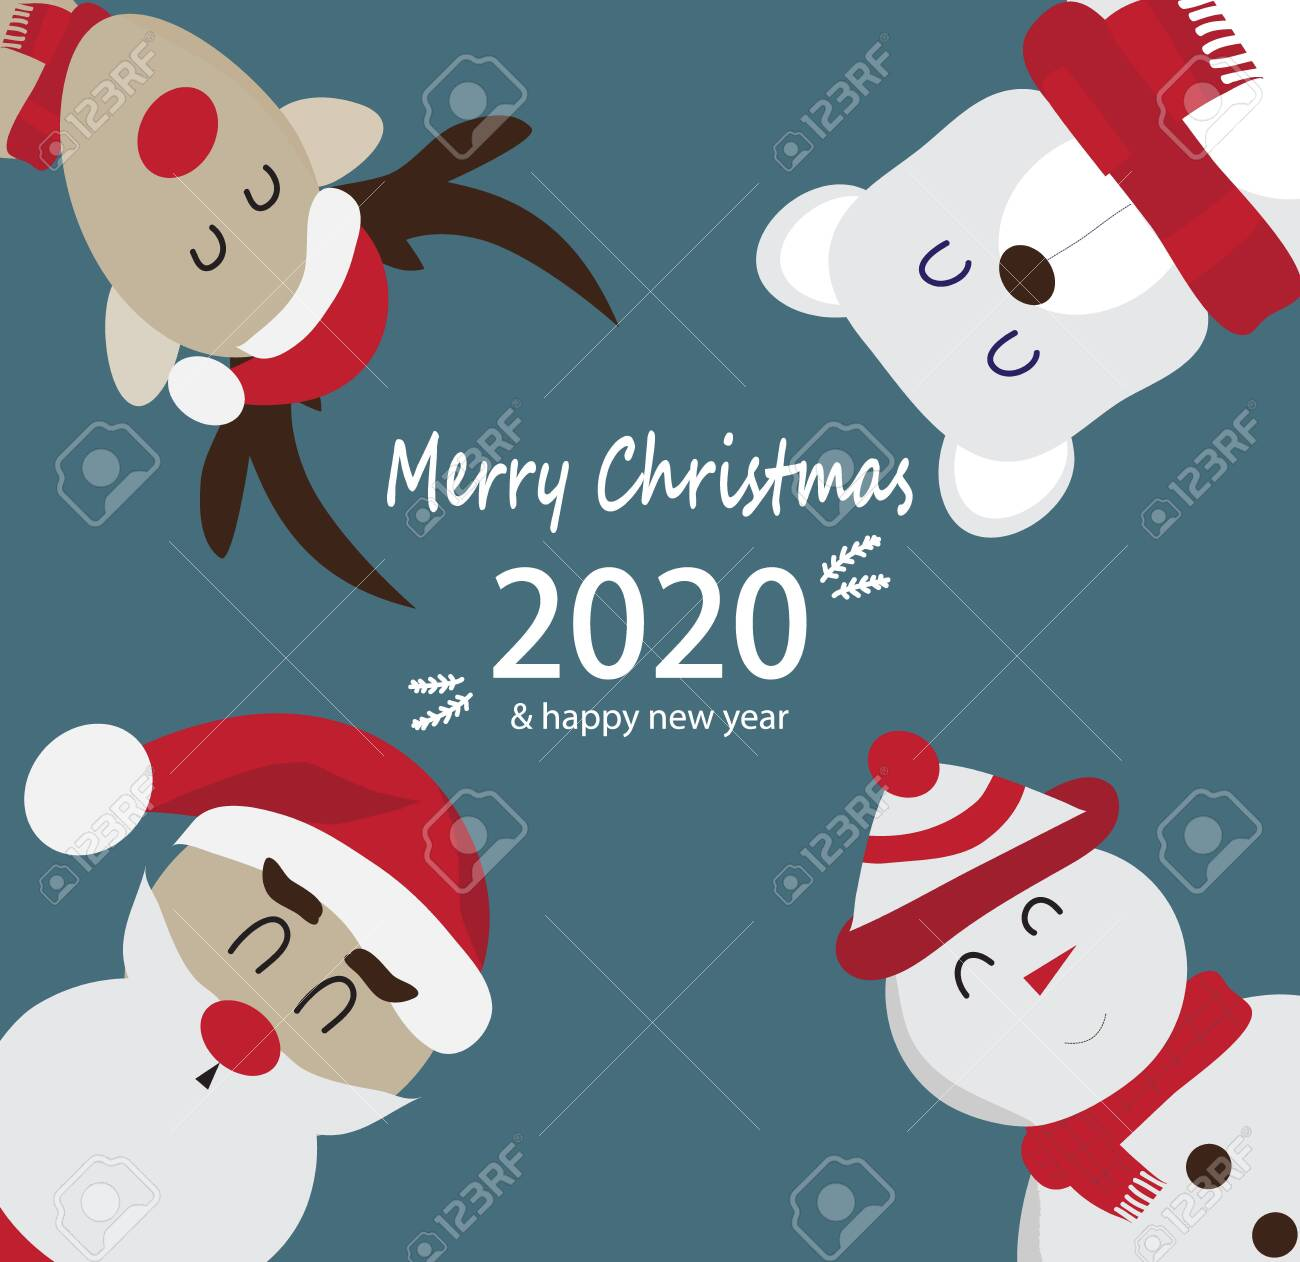 Merry Christmas With Santa 2020 Merry Christmas And New Year 2020 Greeting Cards With Santa Claus